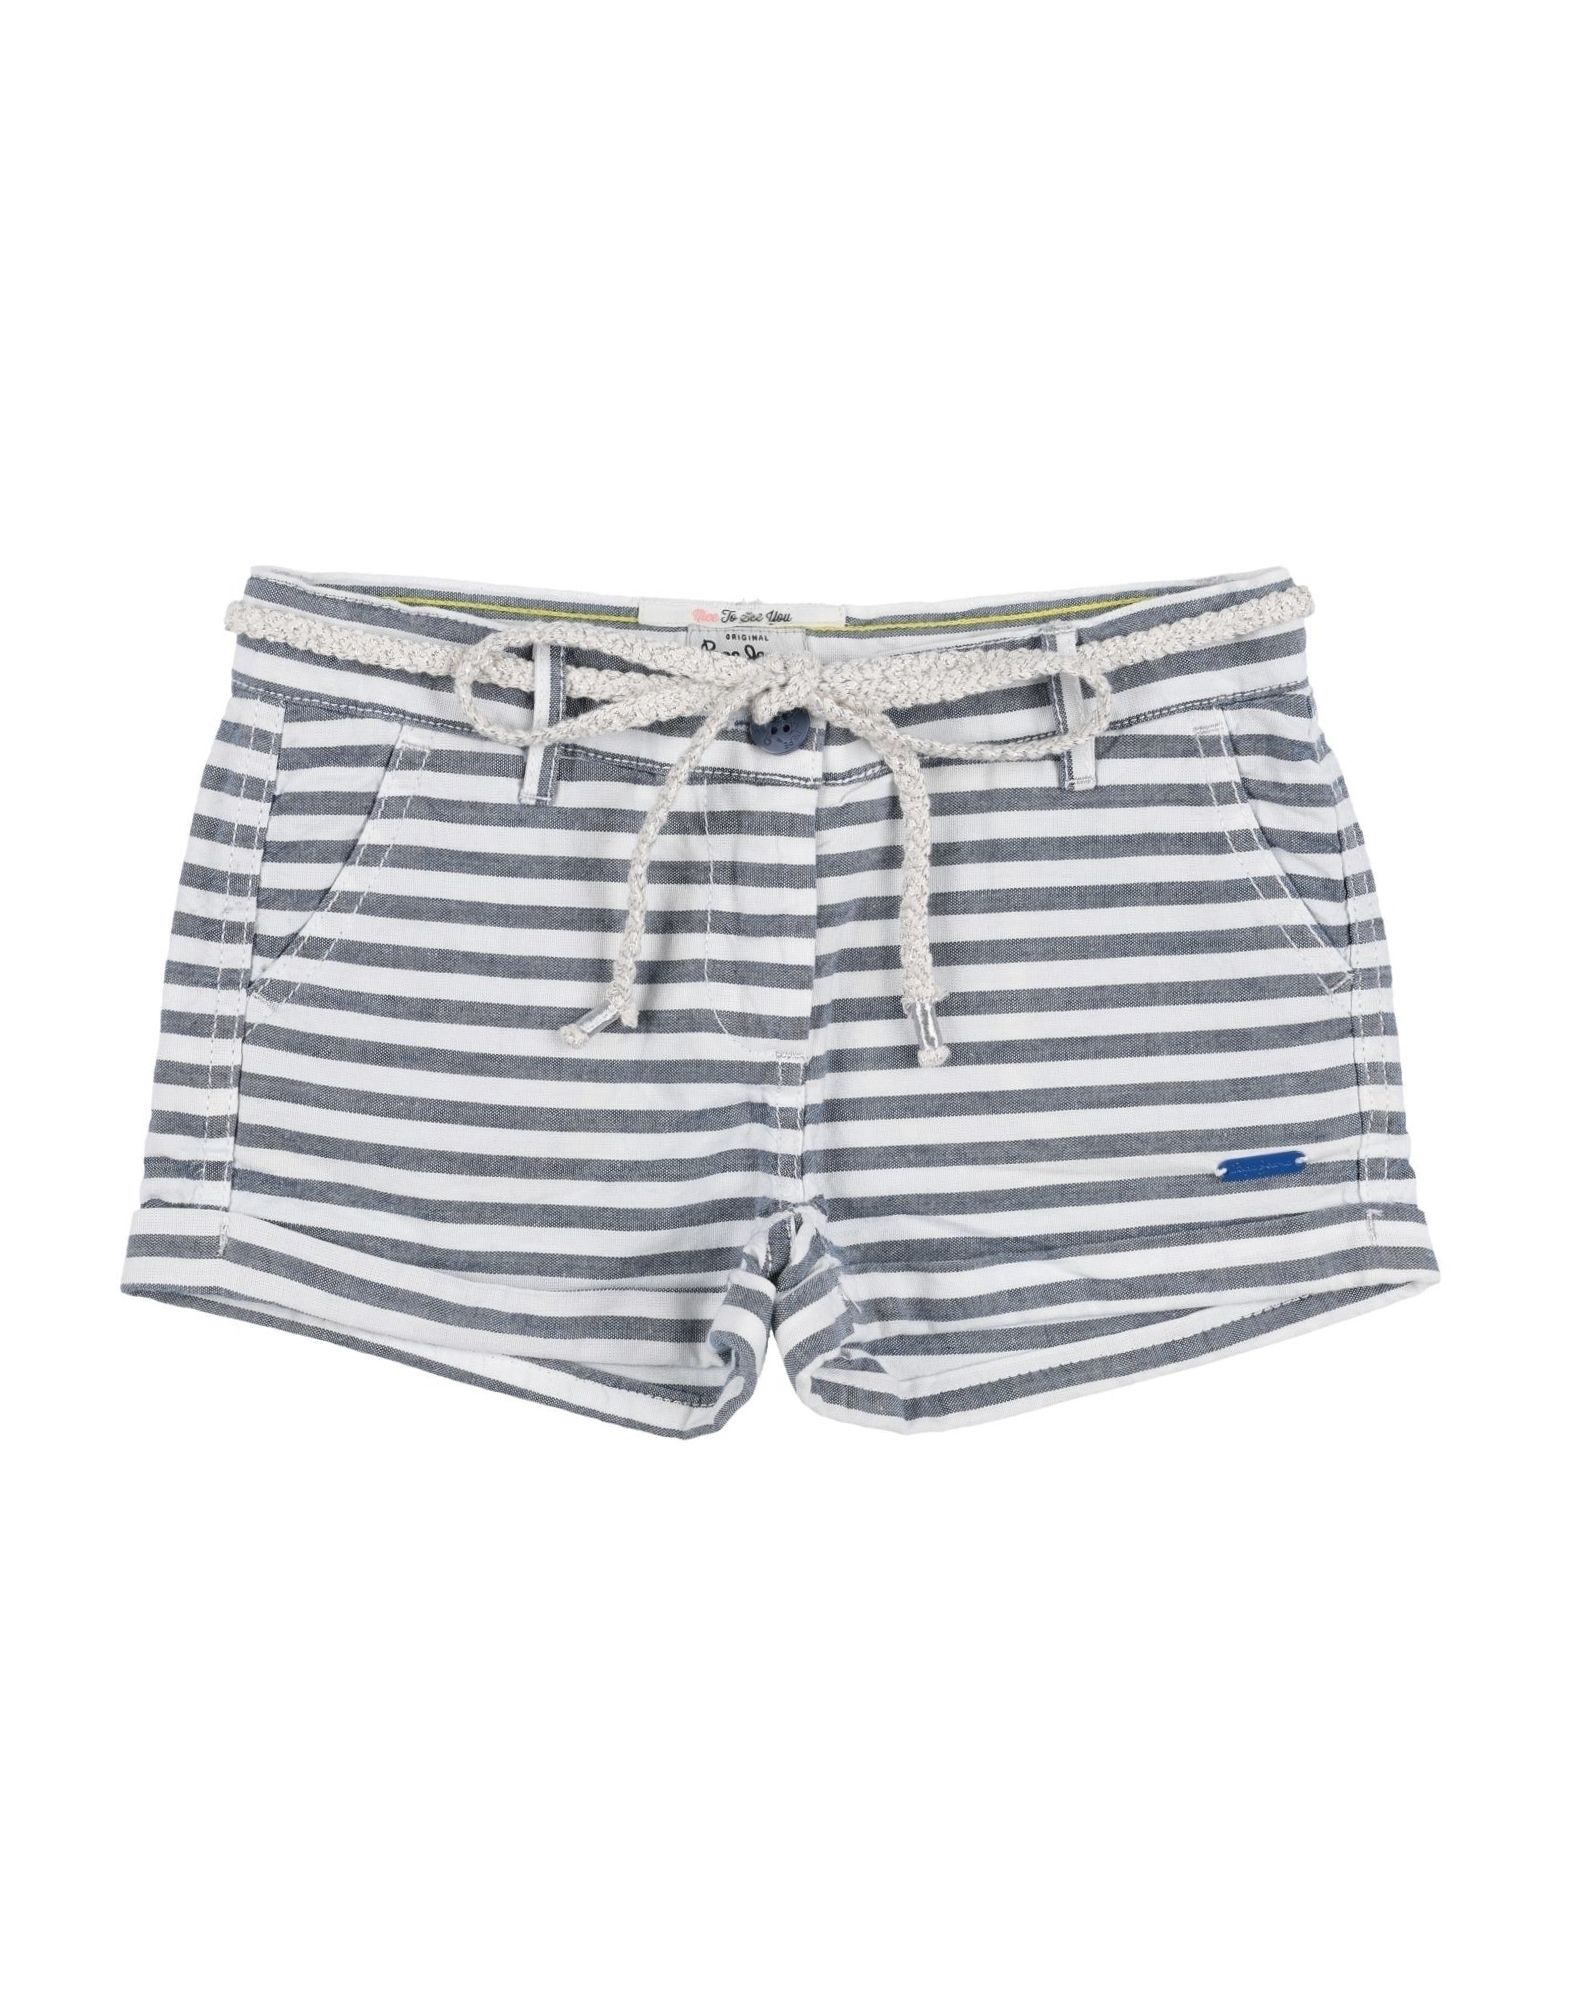 Pepe Jeans Kids' Shorts In White